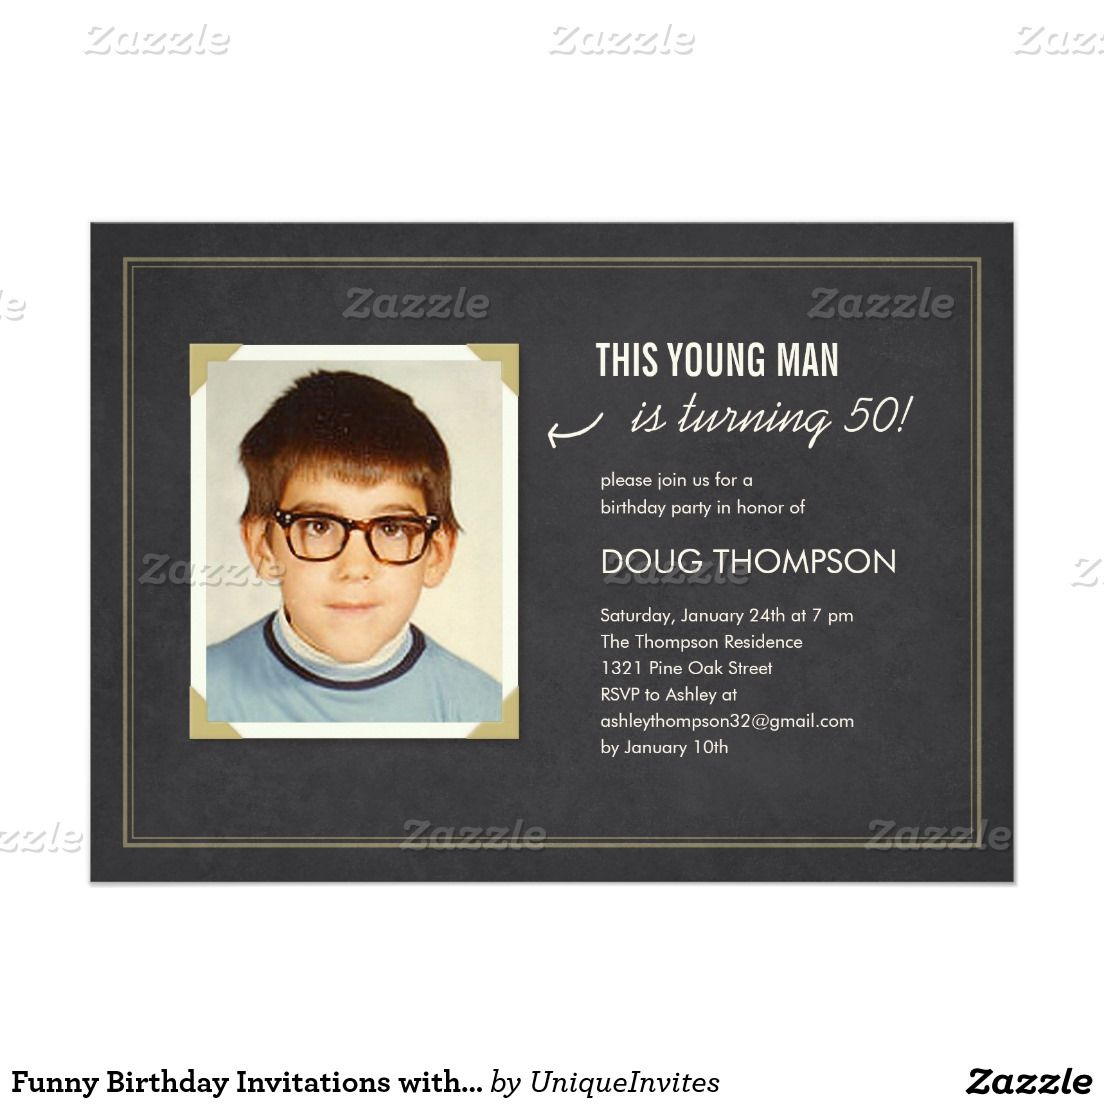 Funny Birthday Invitations with an Old Photo | Funny birthday ...